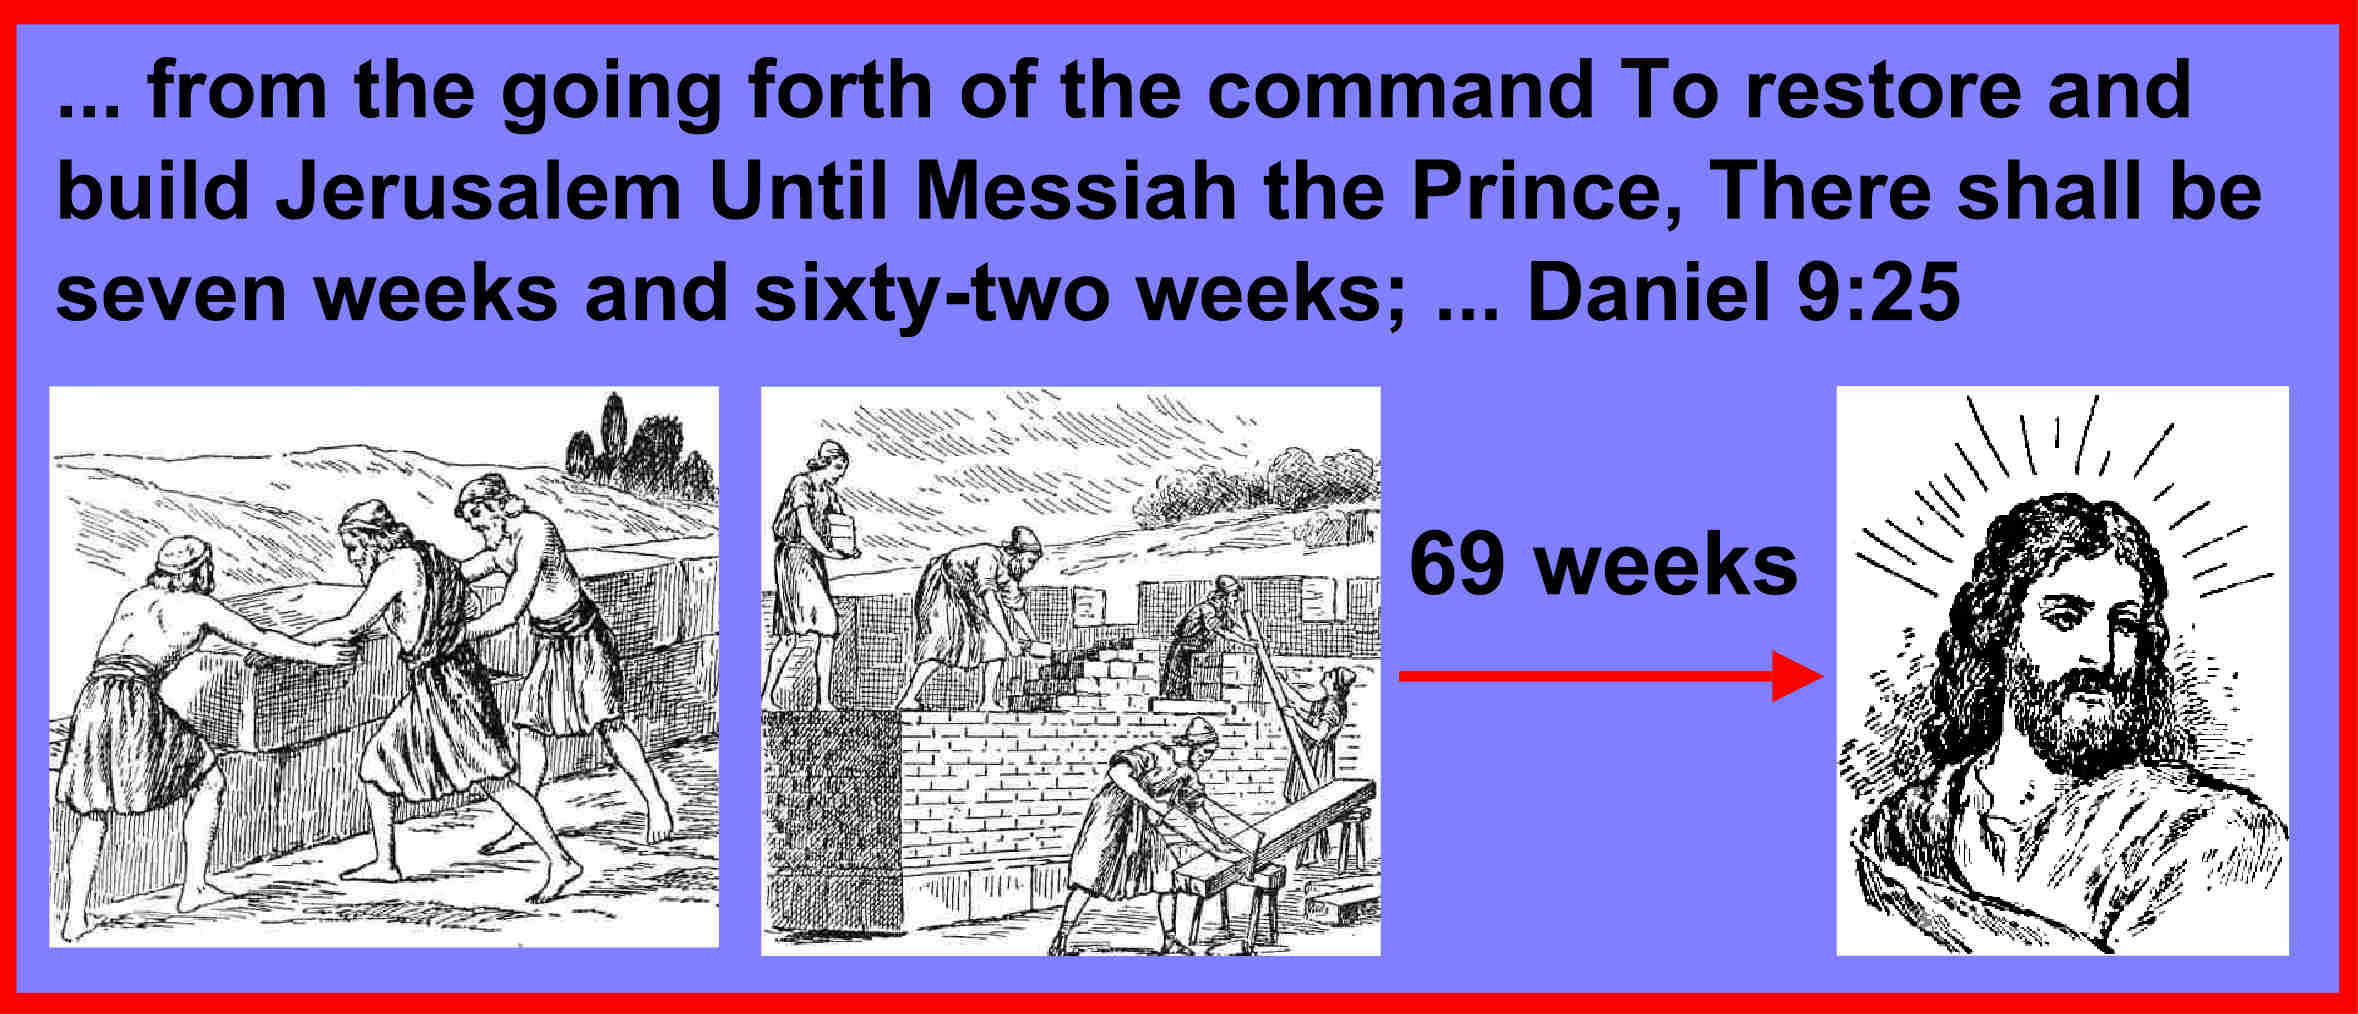 ... from the going forth of the command To restore and build Jerusalem Until Messiah the Prince, There shall be seven weeks and sixty-two weeks; ... Daniel 9:25.